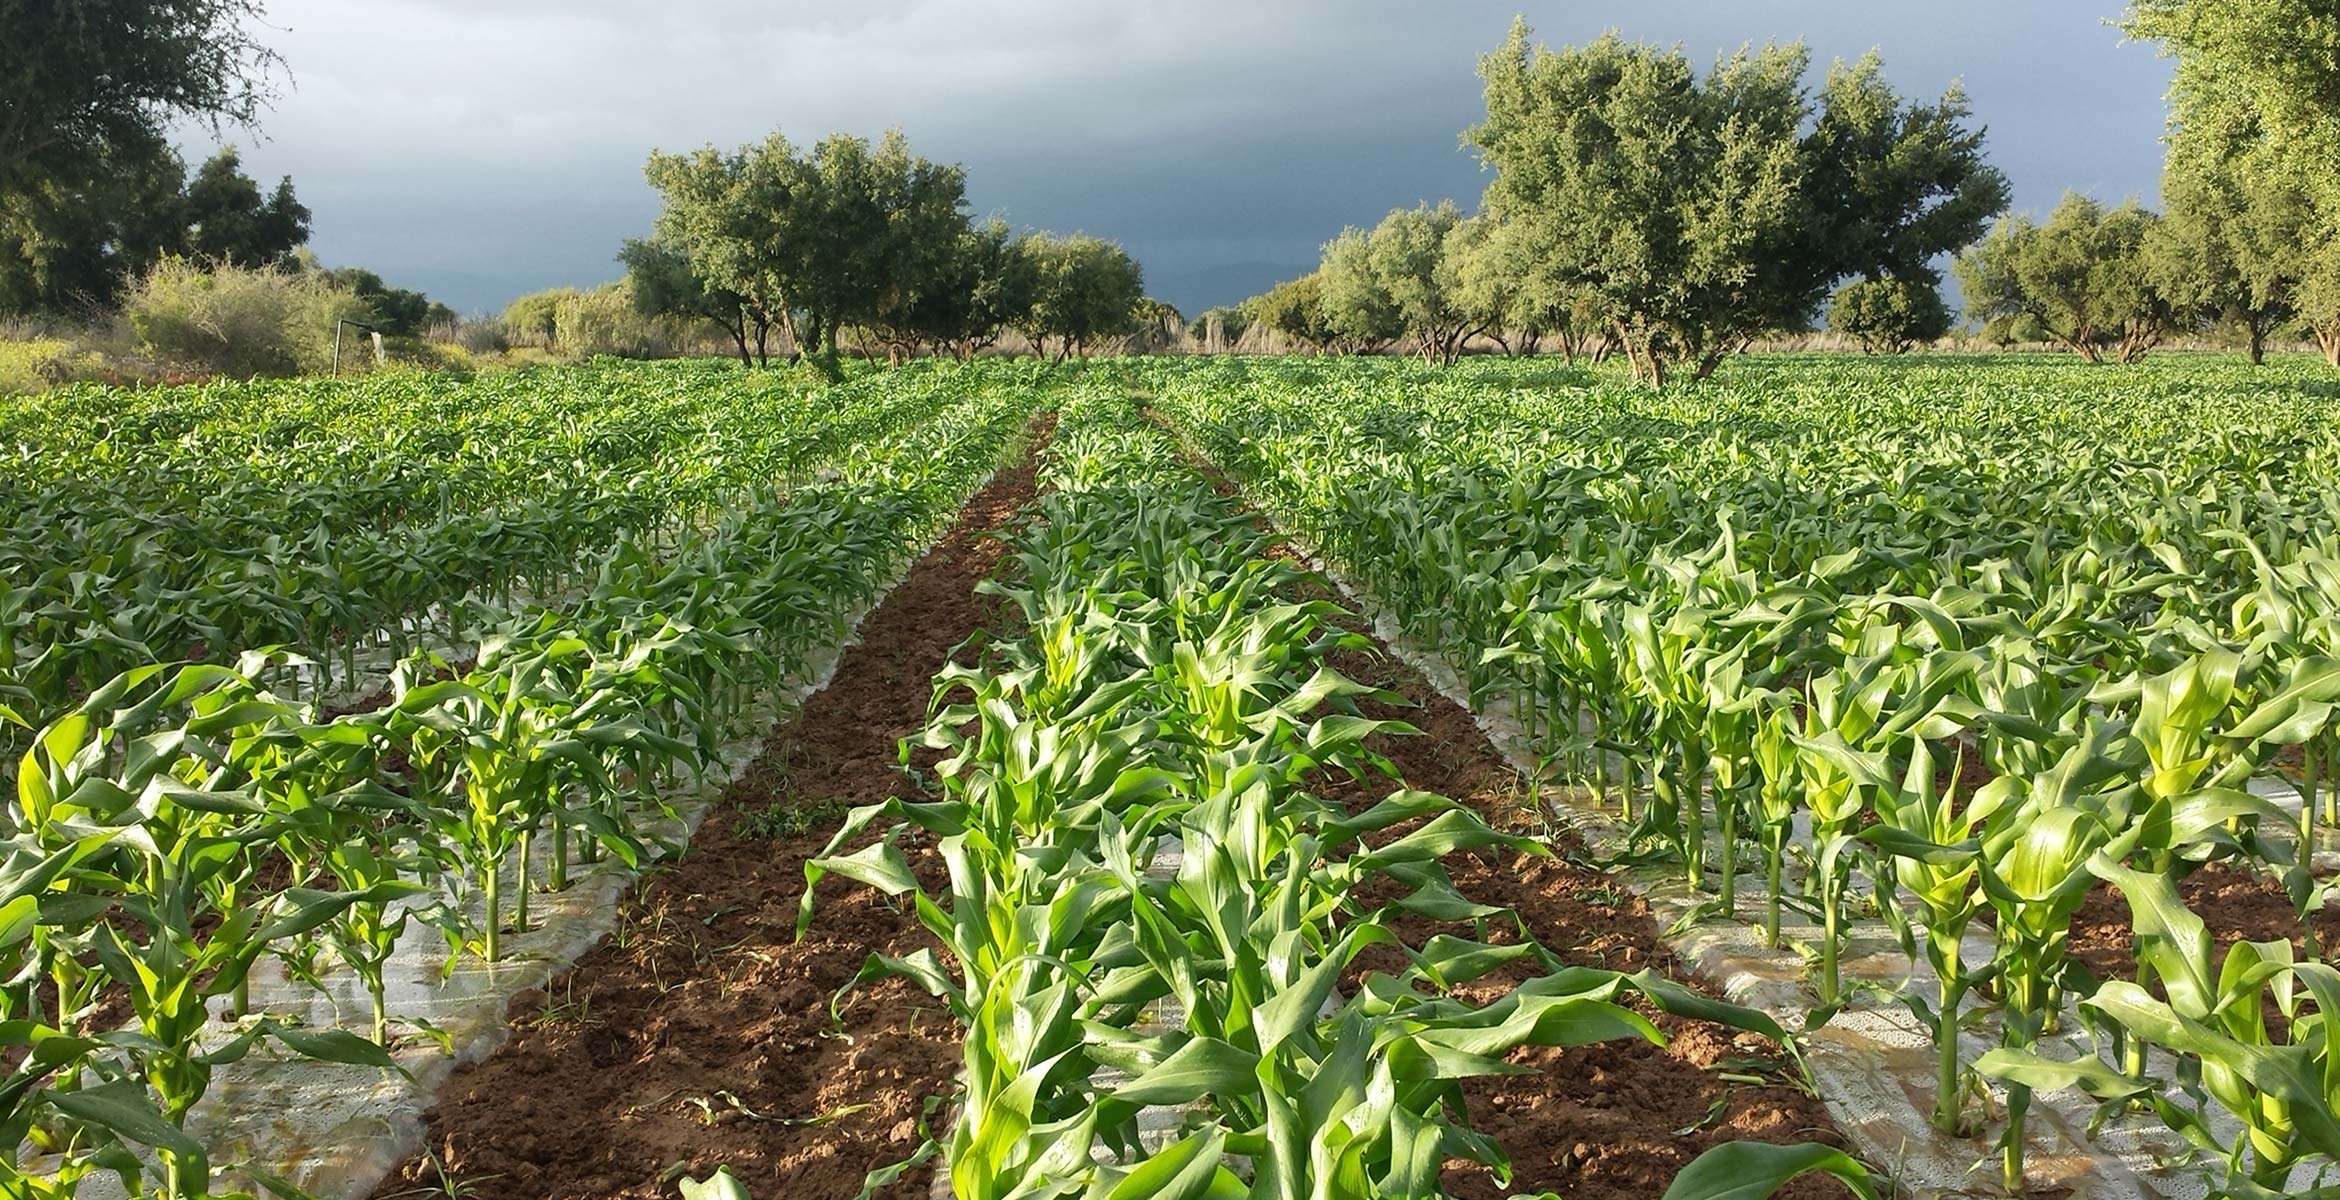 Photograph of your Sweetcorn plants grown by Barfoots España